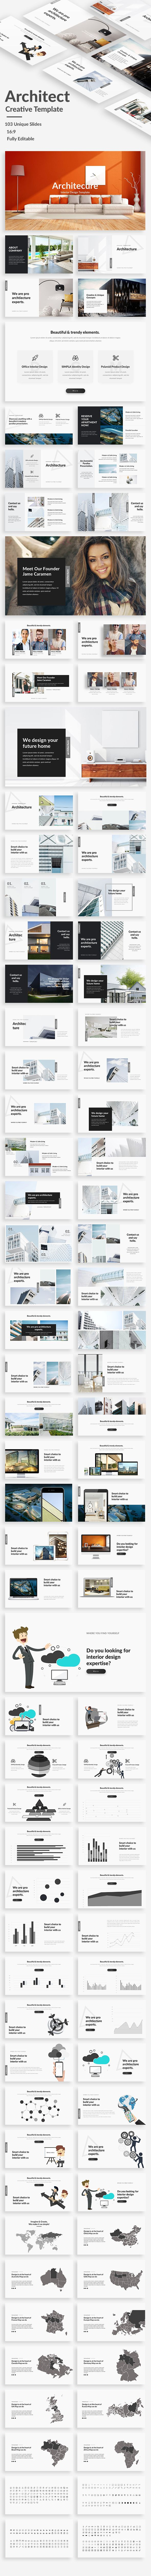 Architecture and interior design powerpoint template creative architecture and interior design powerpoint template toneelgroepblik Image collections